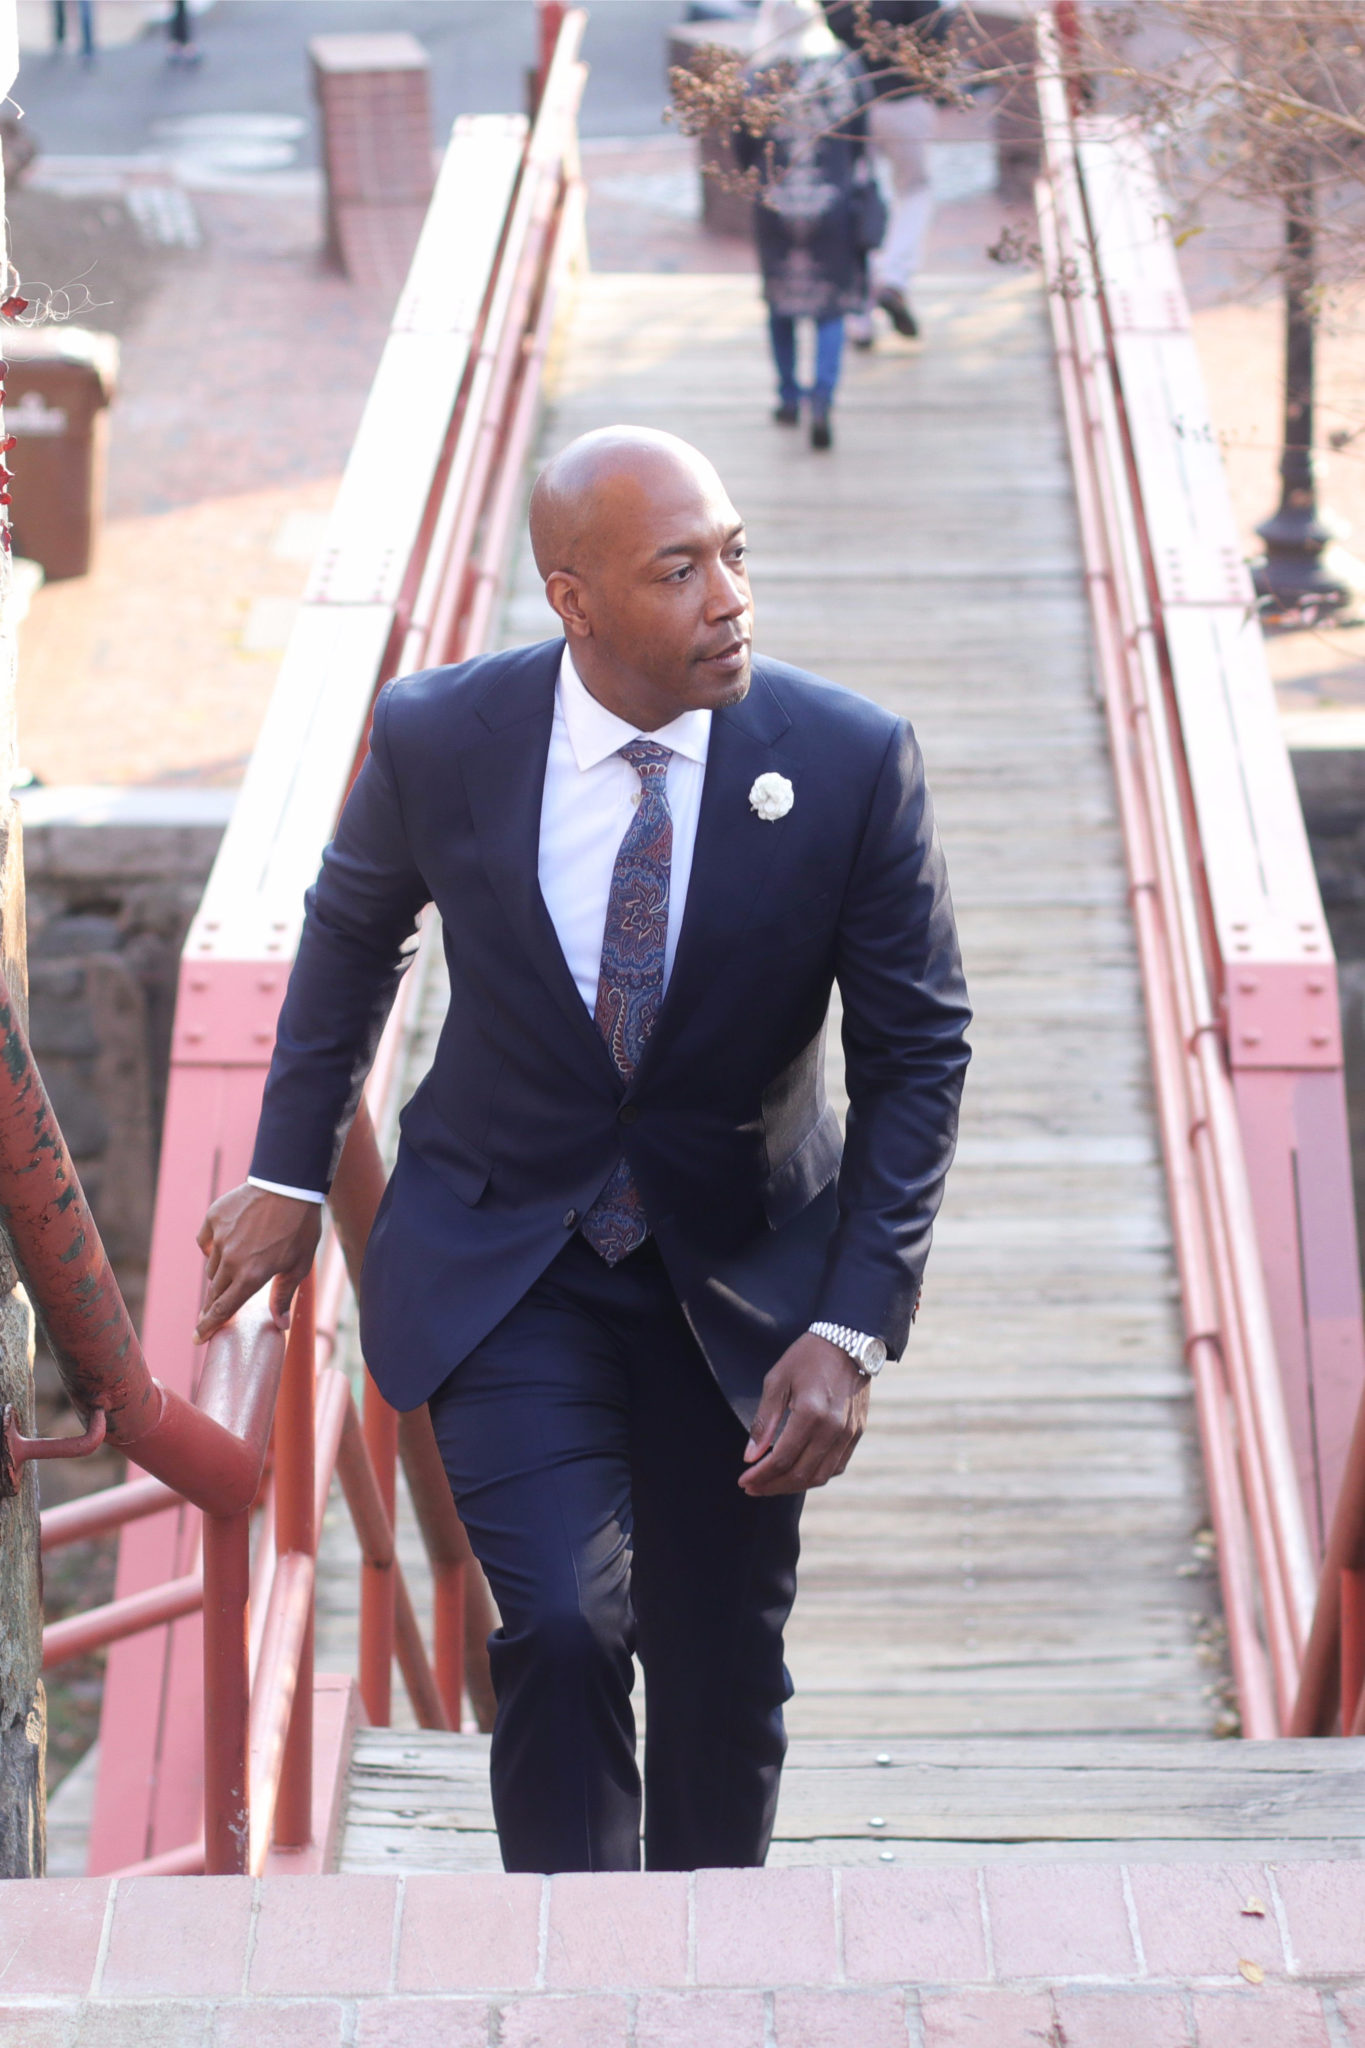 The navy suit from Suit Supply in Georgetown - The DCFashion